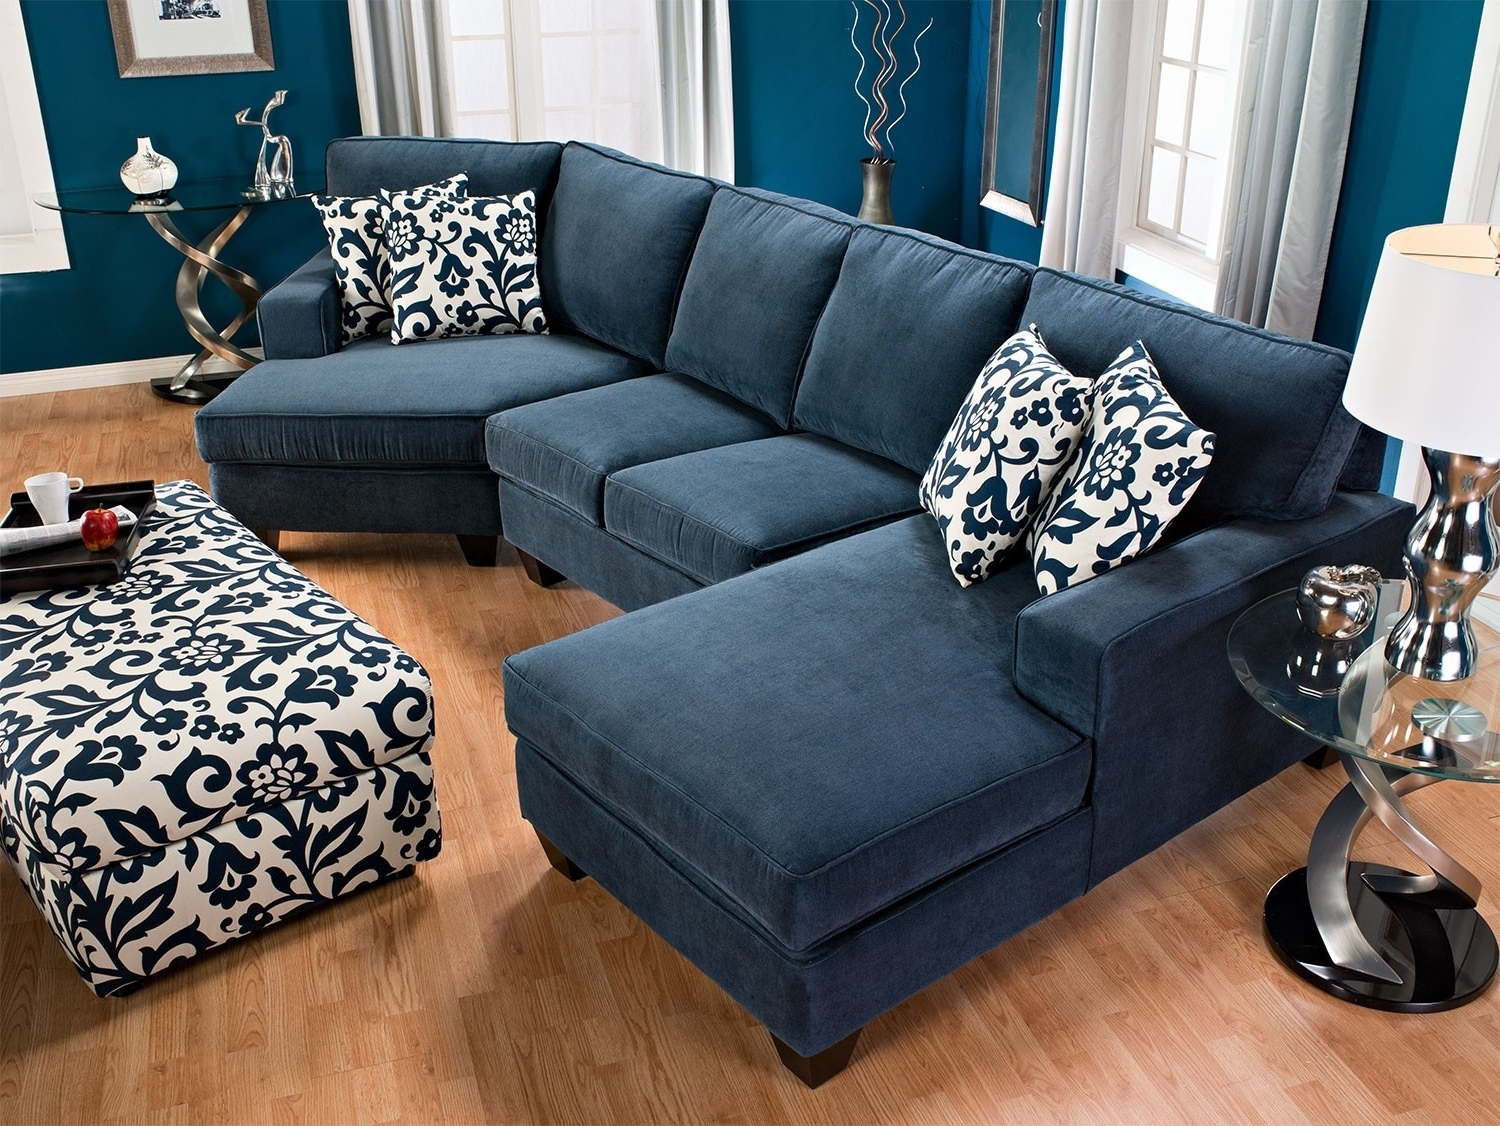 Chenille Sectional Sofa With Chaise Gallery 11 Of 20